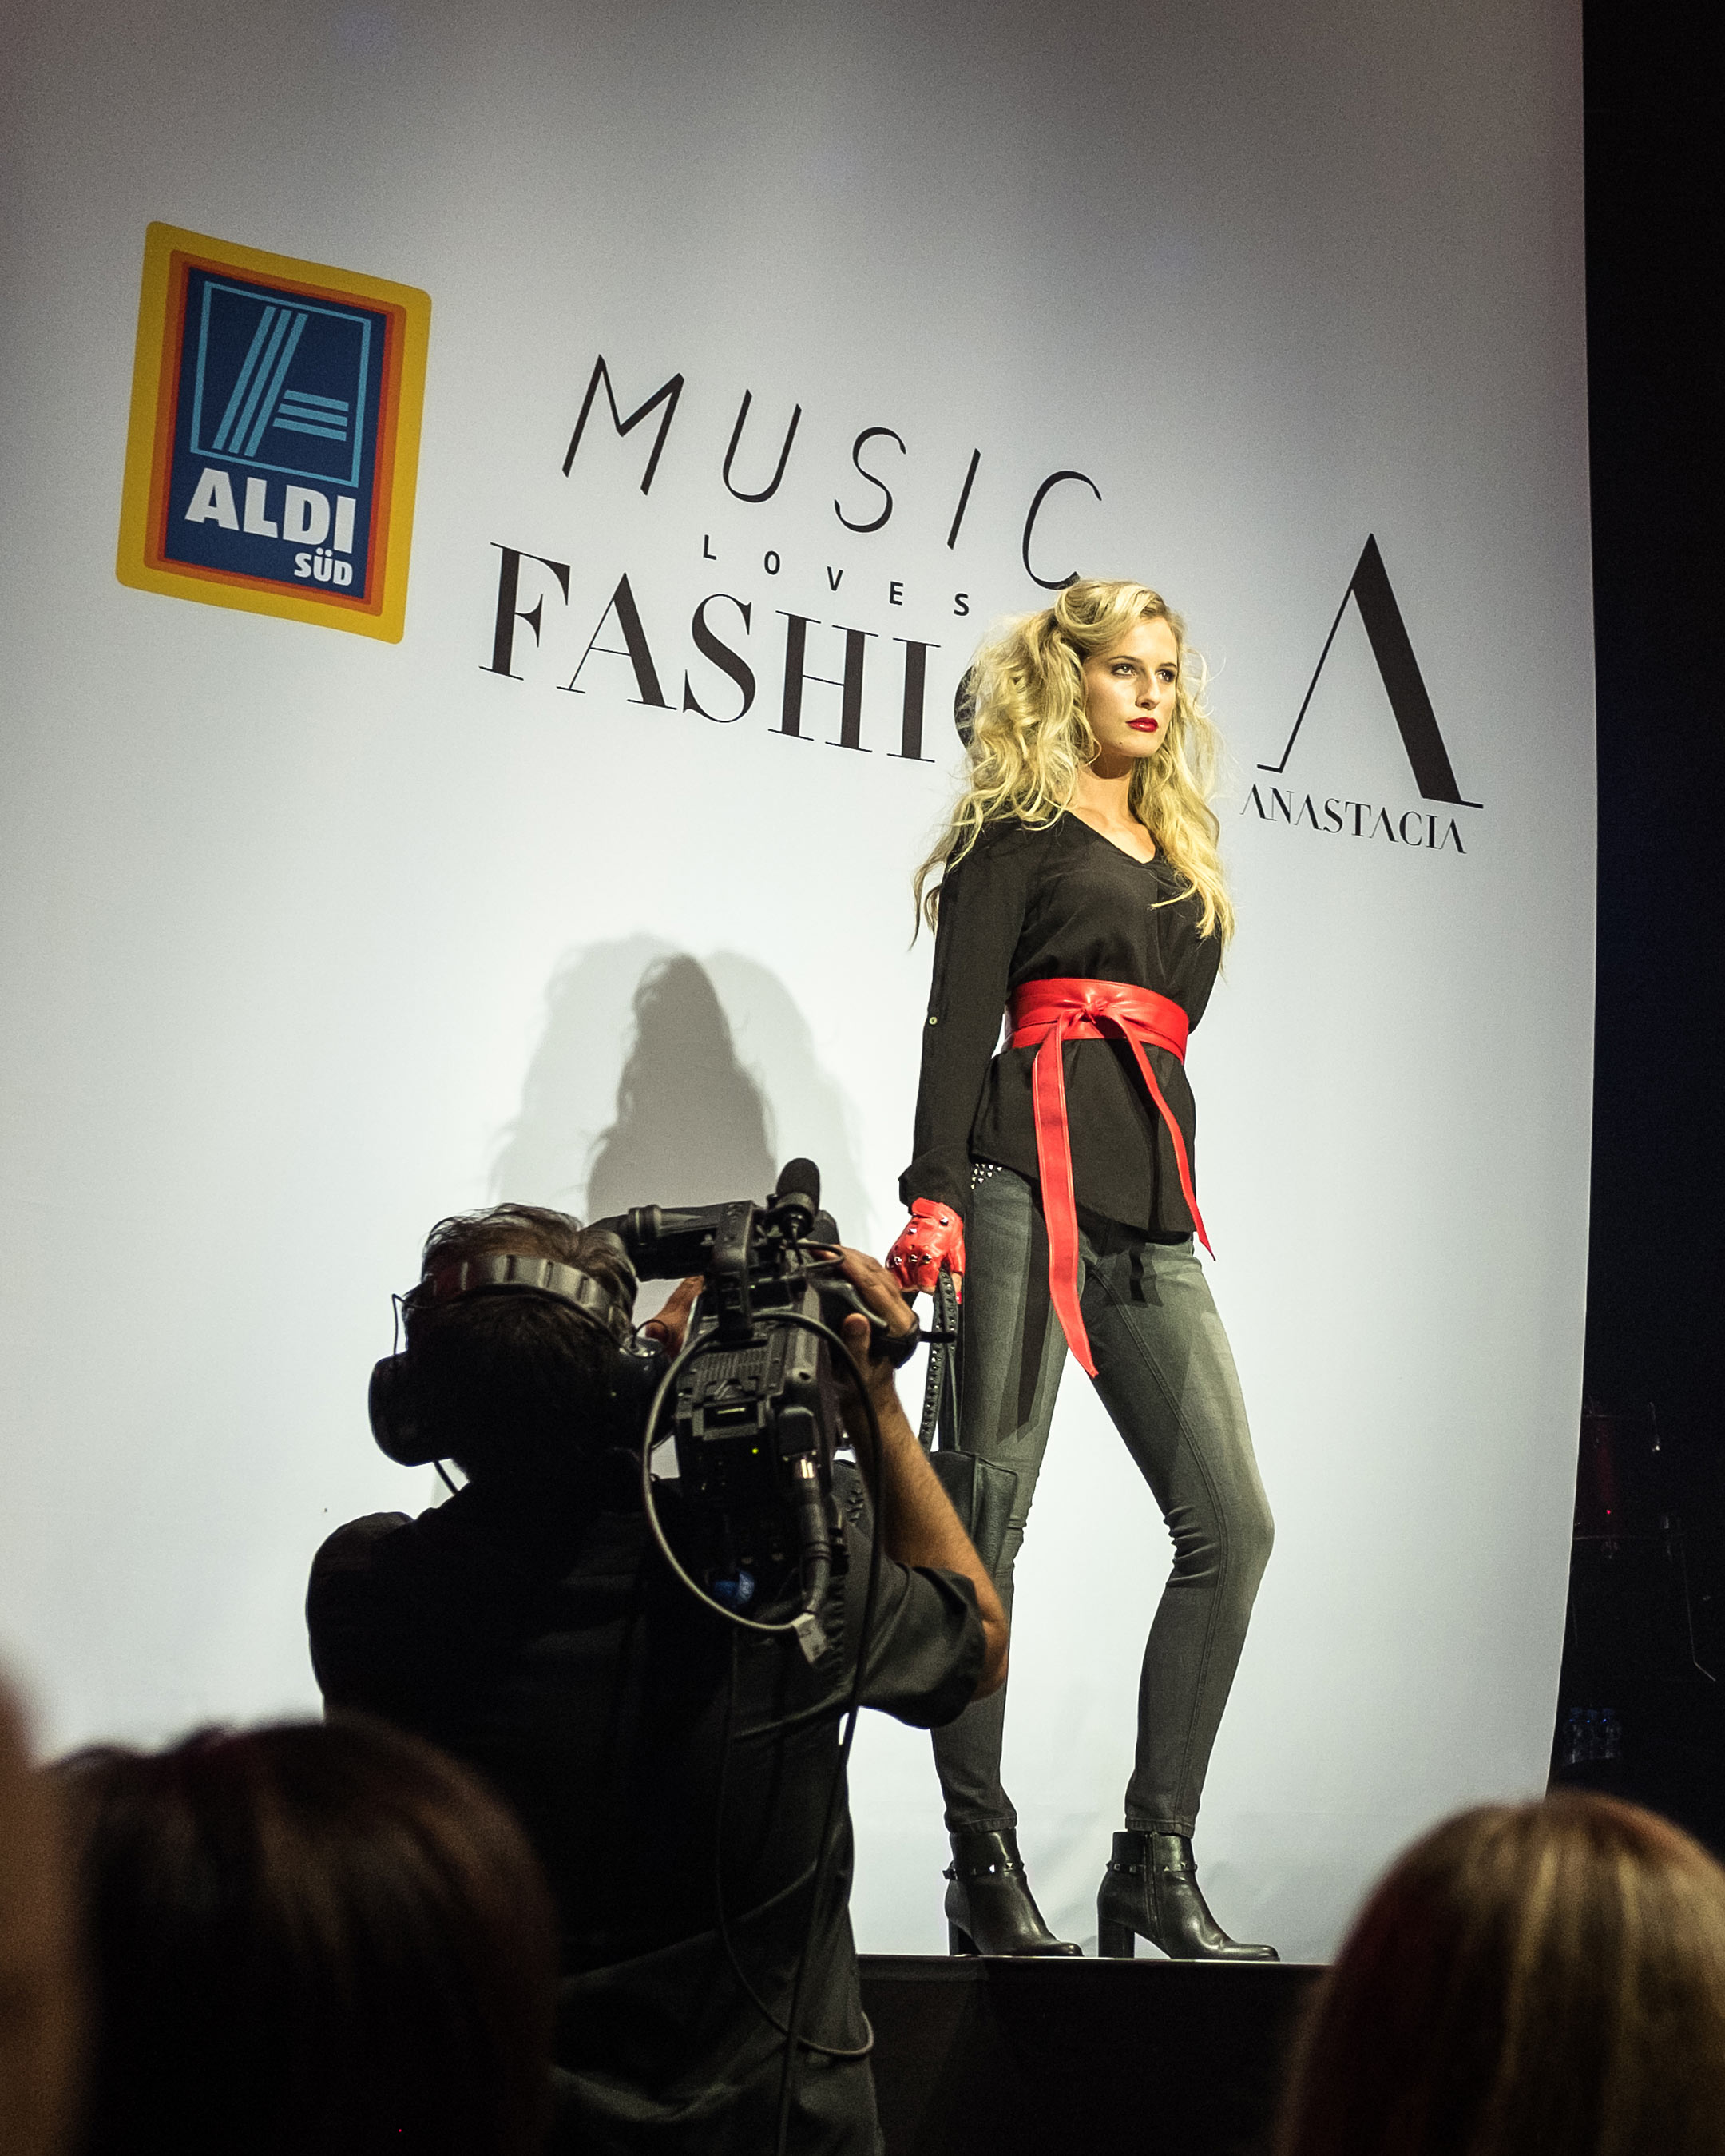 Music Loves Fashion Aldi Süd Anastacia Kollektion Event Sunnyinga Blog